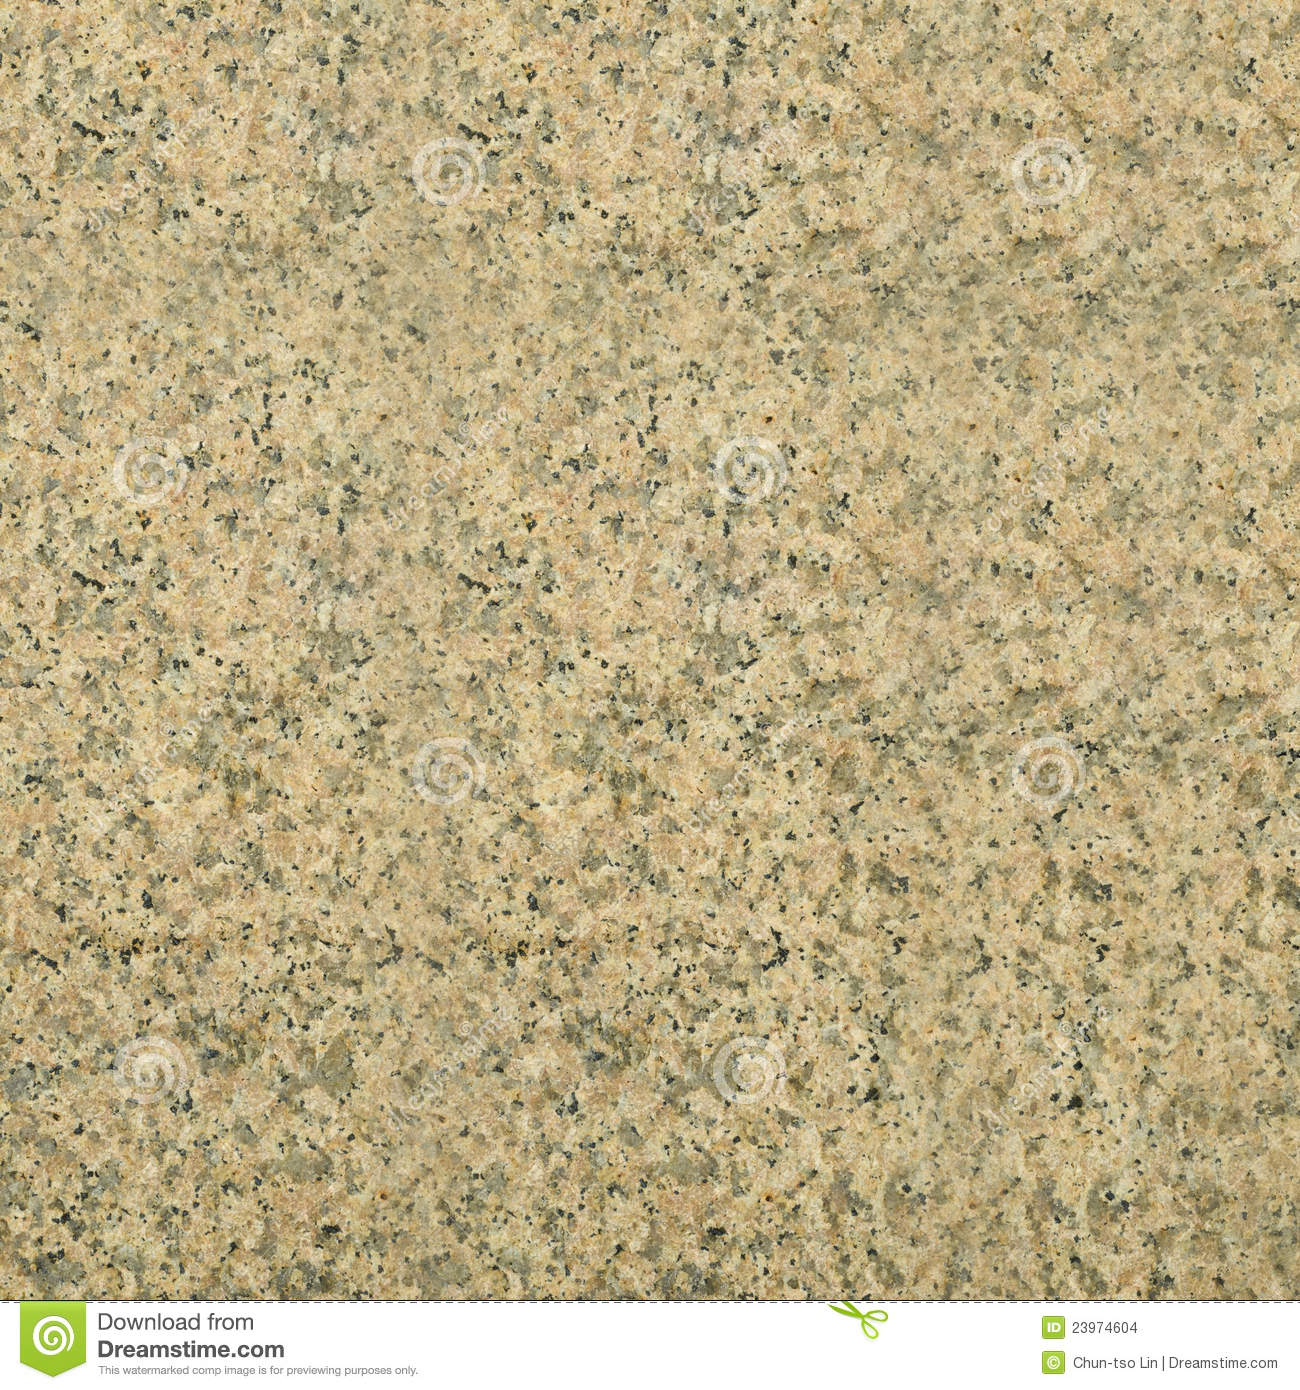 Rock background,highly detailed texture of granite surface.